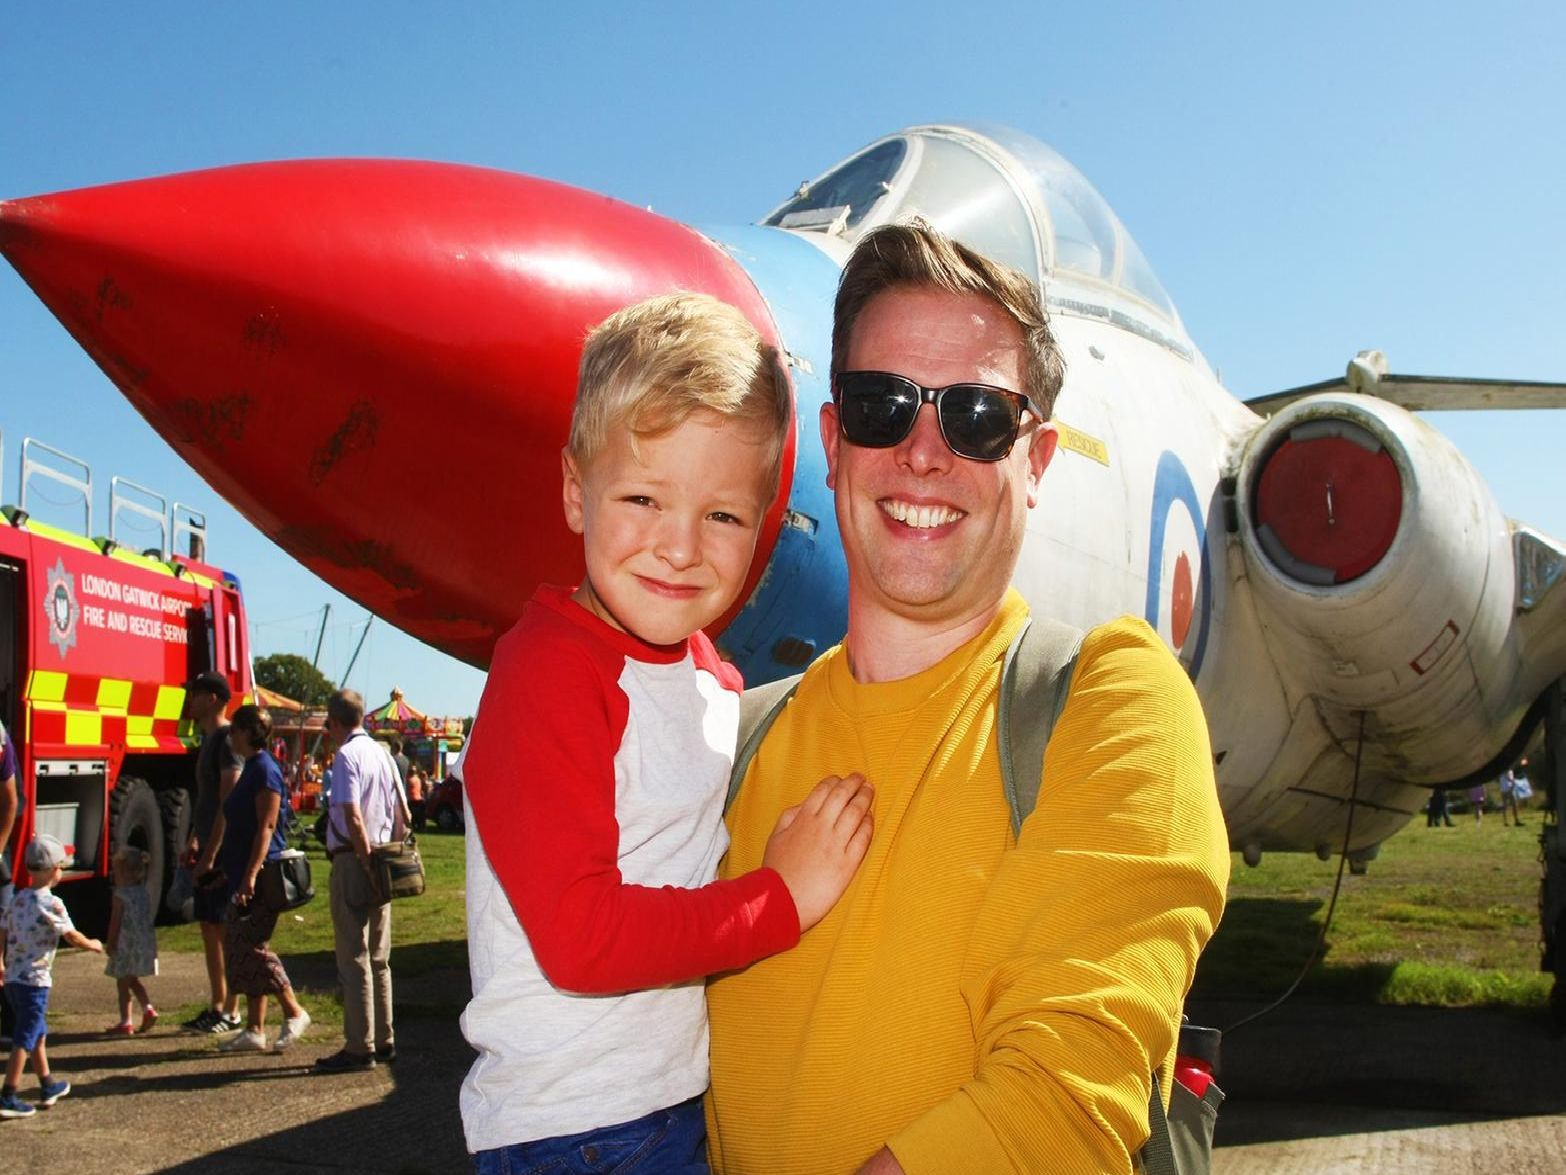 The sun shone as visitors enjoyed an exclusive behind the scenes look at some of  Gatwick Airport's operations at its annual Fun Day event.